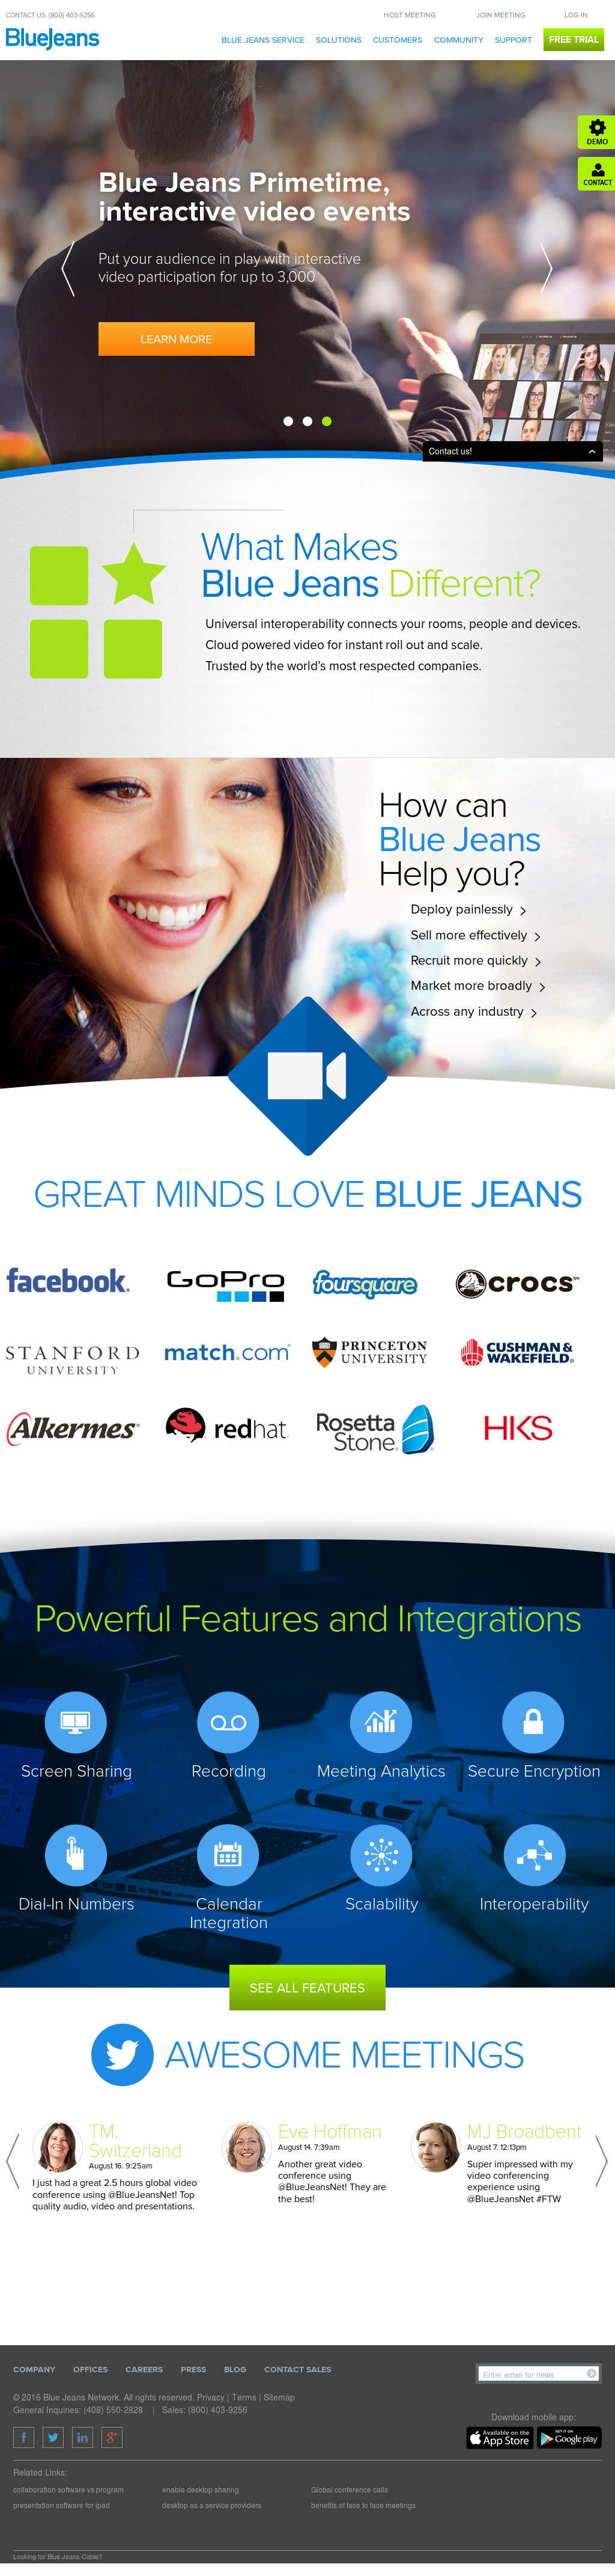 Blue Jeans Network Competitors, Revenue and Employees